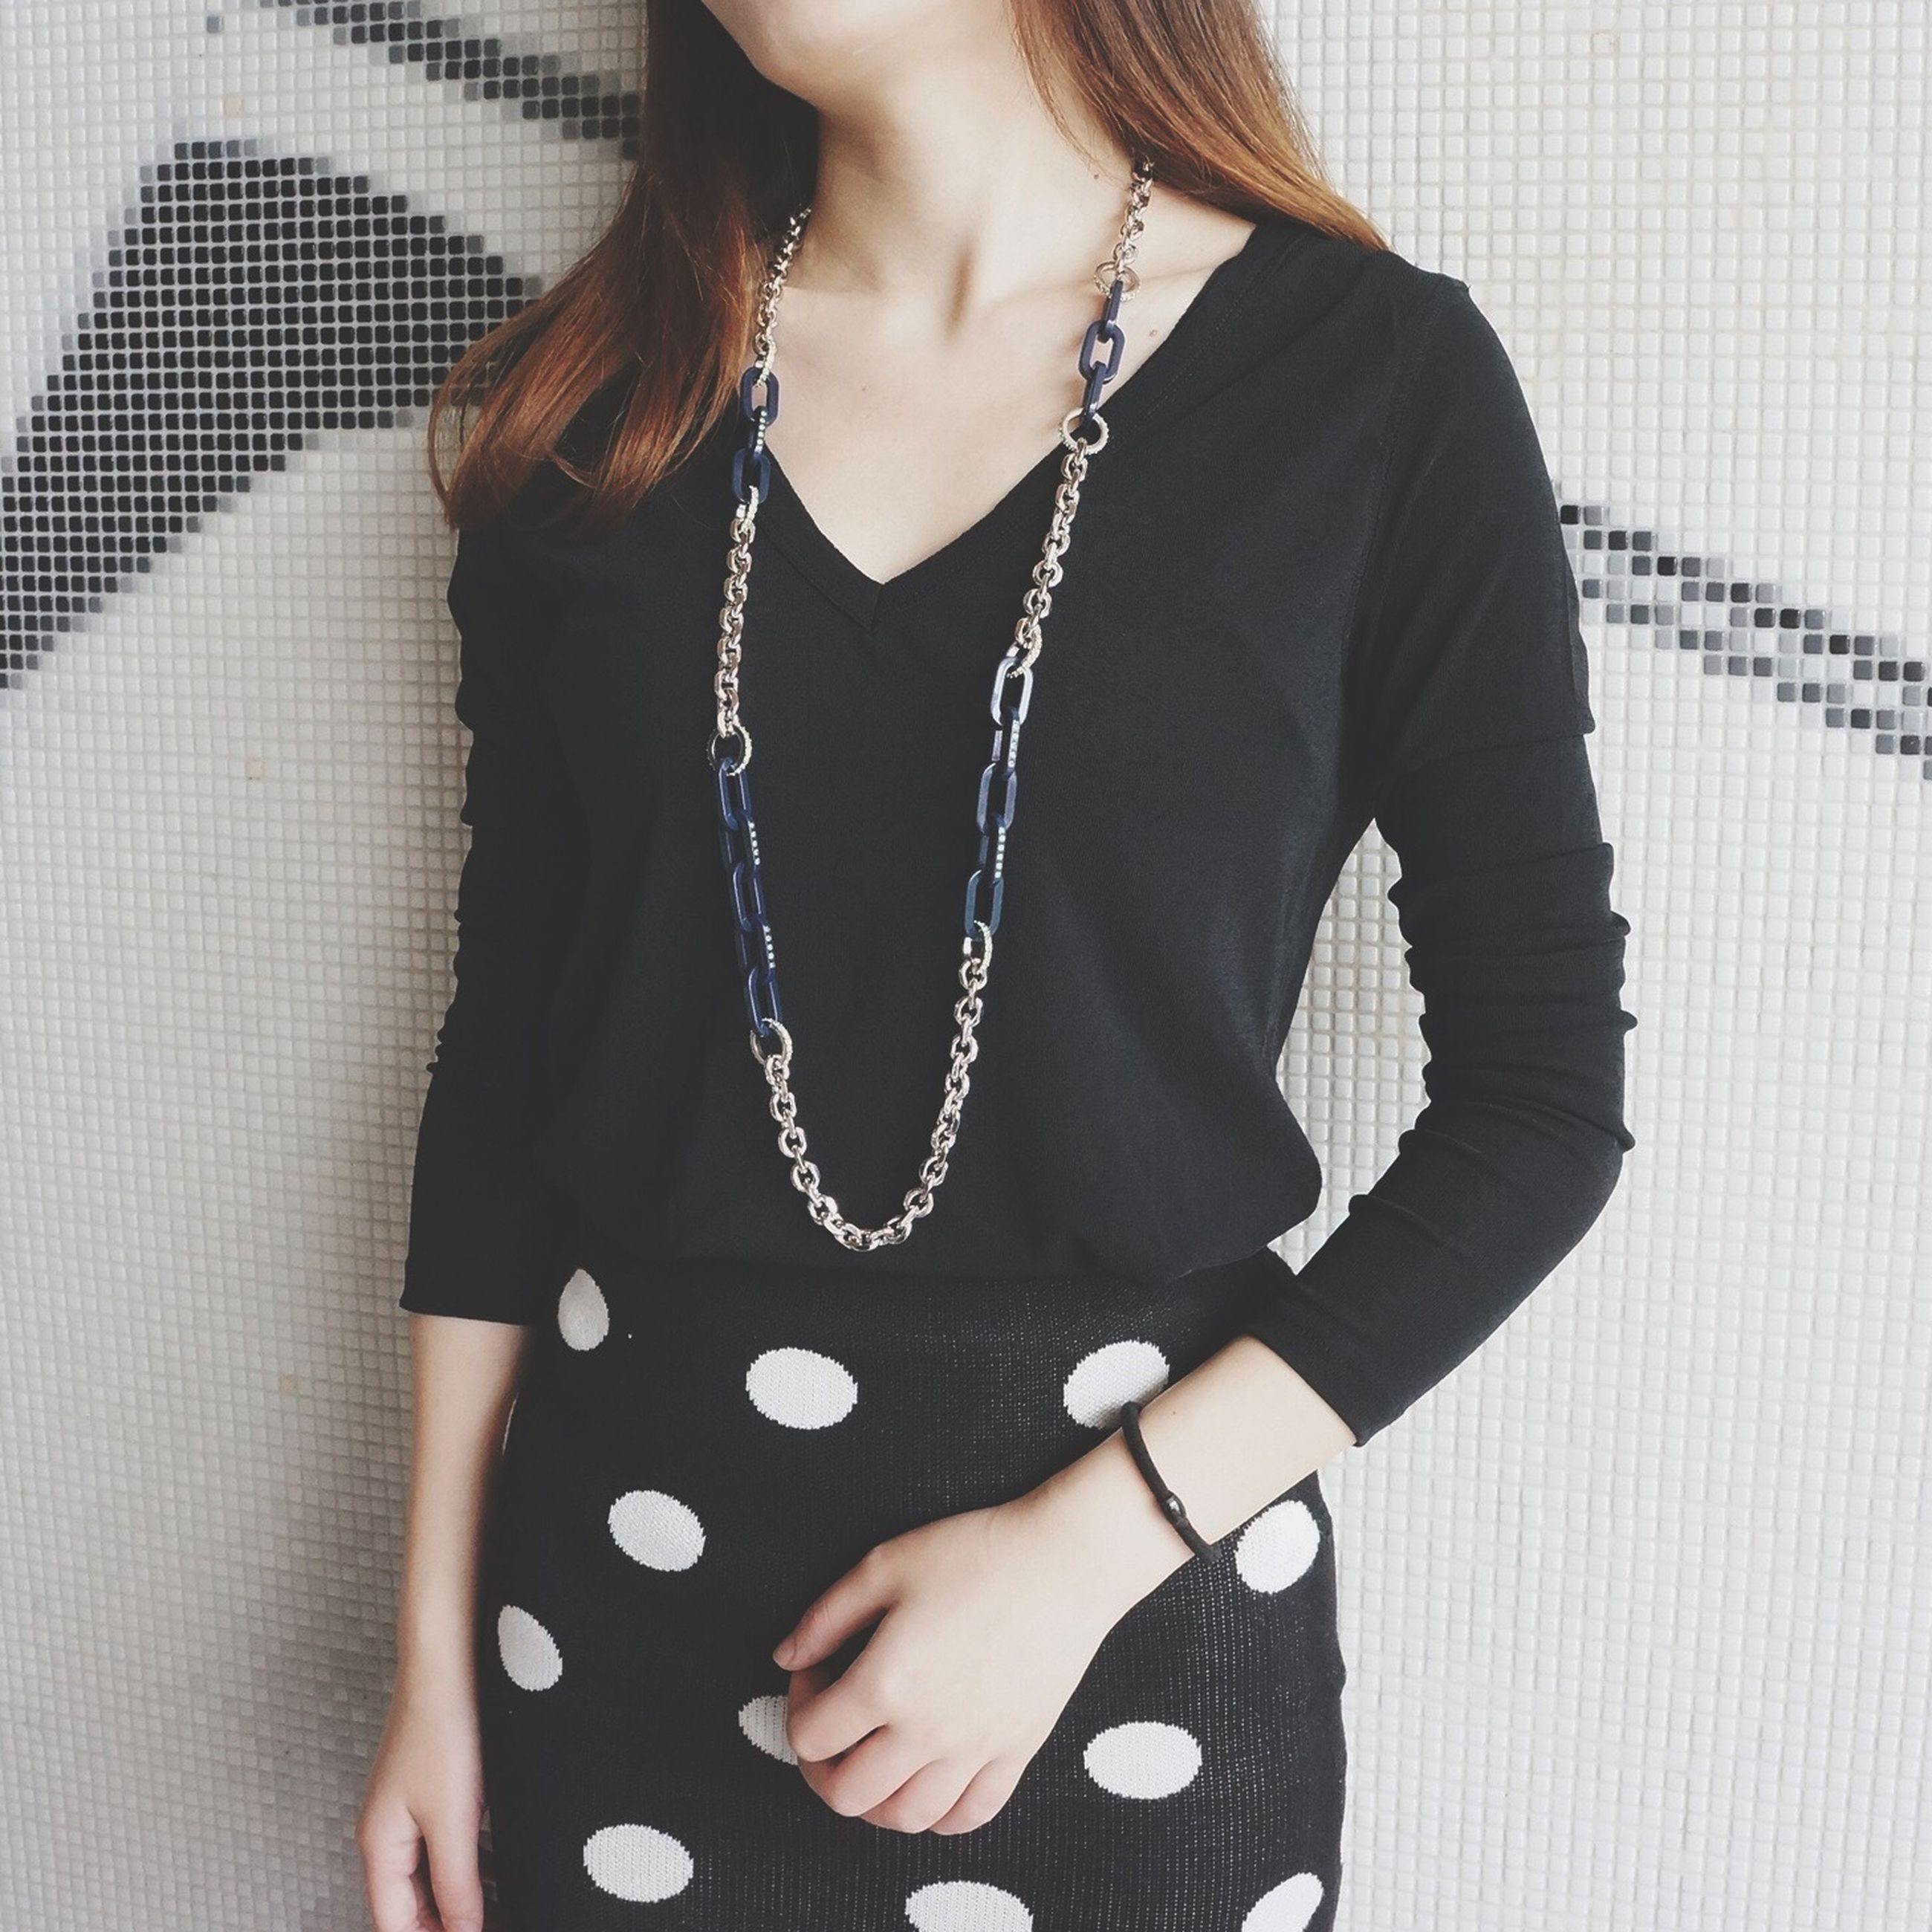 fashion, young adult, casual clothing, fashionable, young women, midsection, necklace, front view, femininity, confidence, youth culture